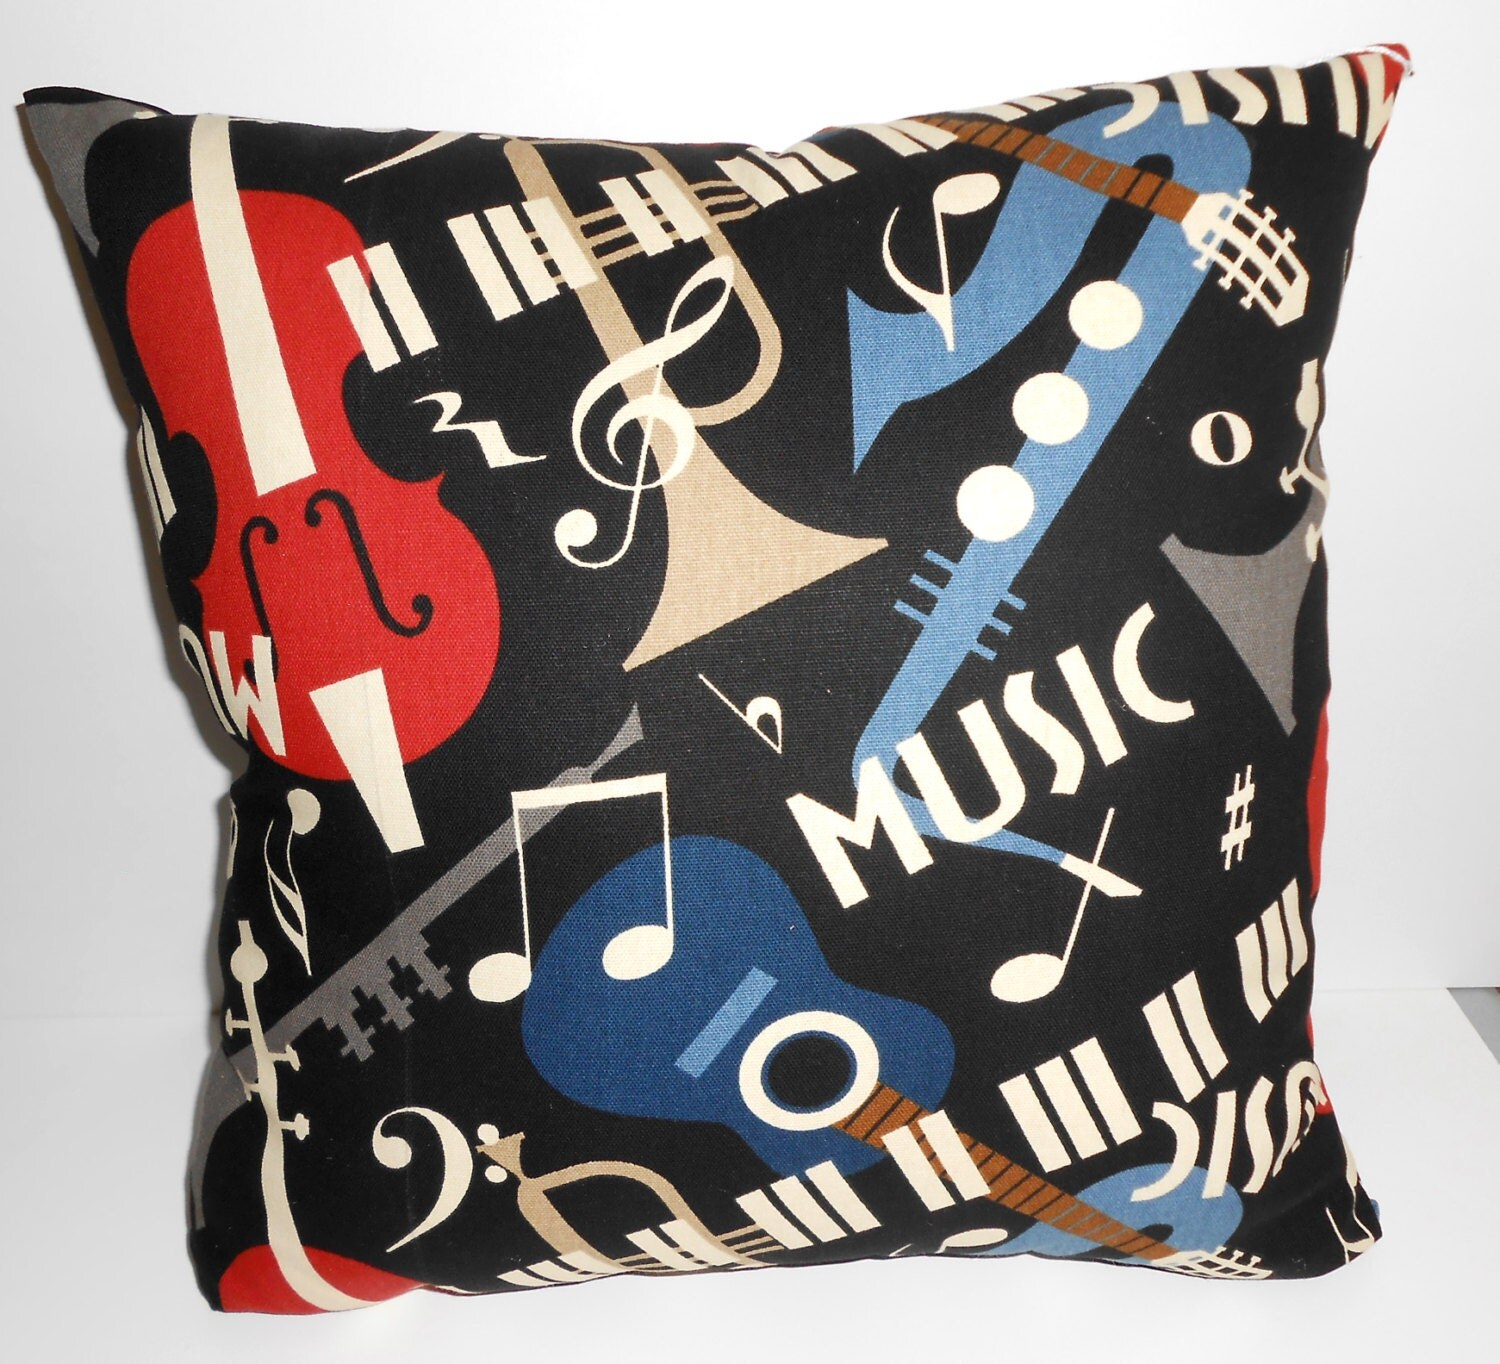 No Throw Pillows On The Bed Song : Music Pillow Handmade Music Throw pillow 17 X 17 inch square